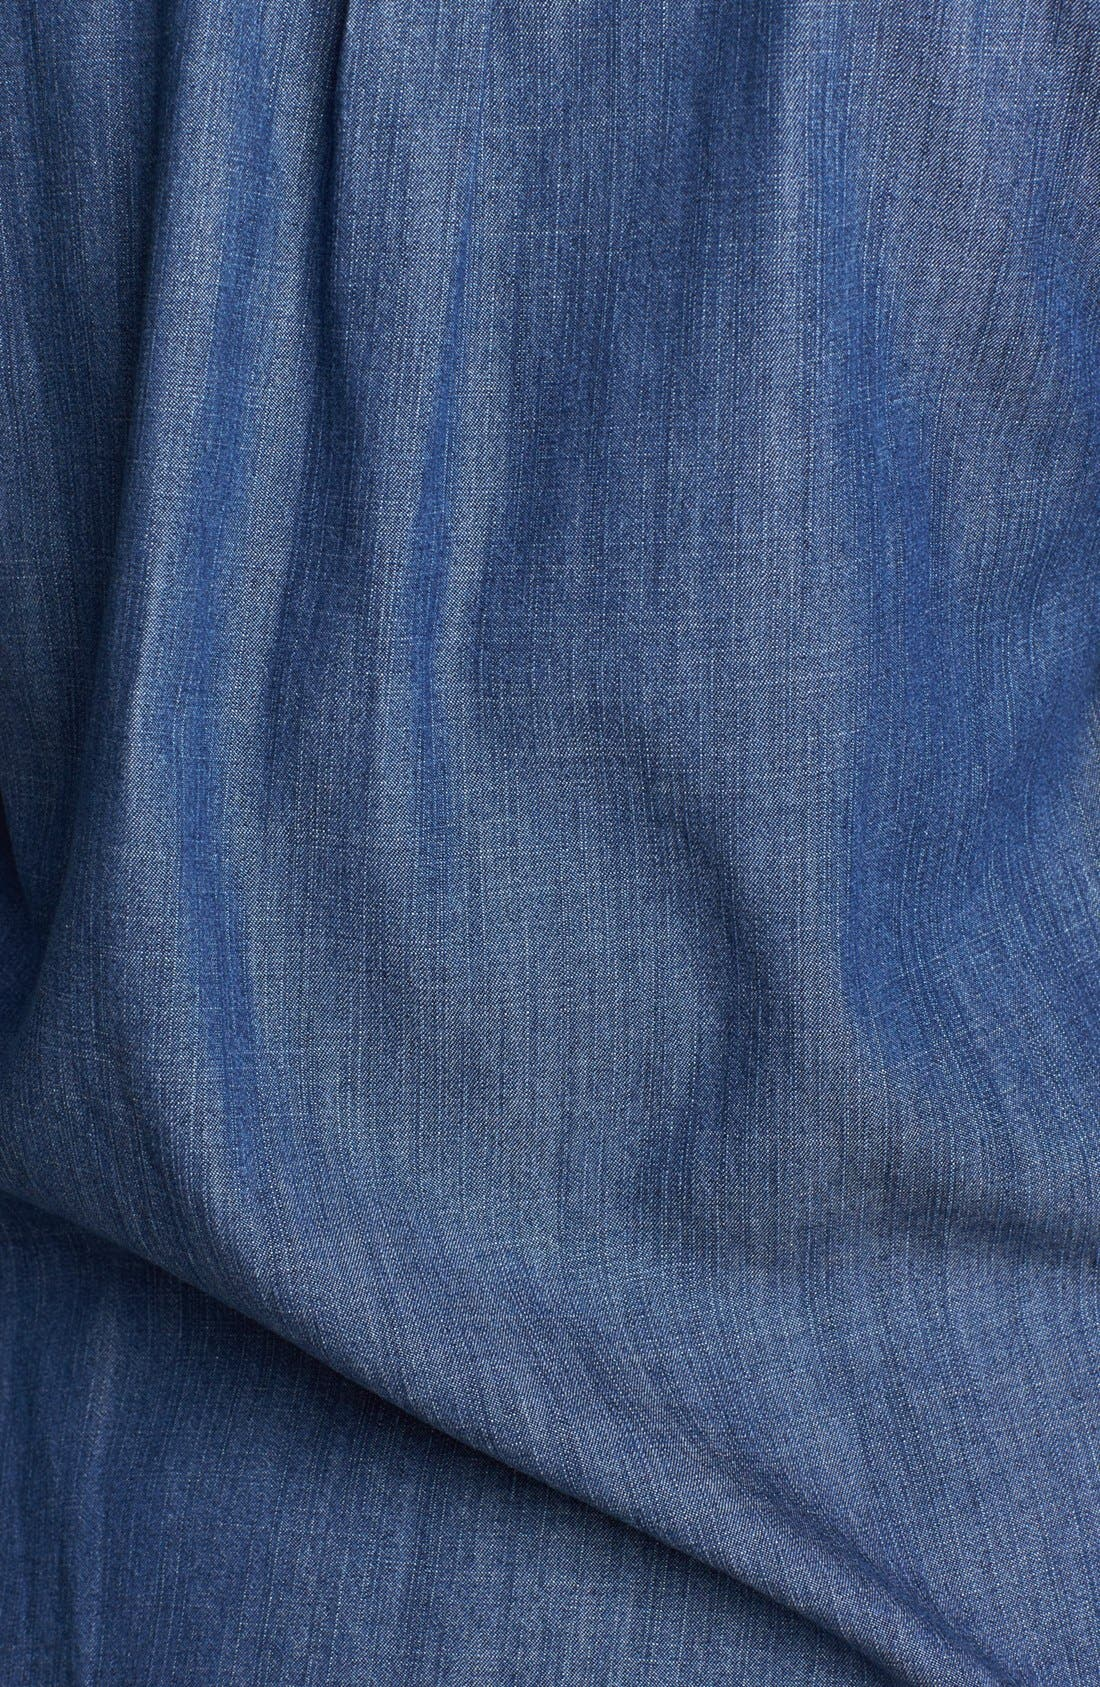 EILEEN FISHER,                             Denim Shirt,                             Alternate thumbnail 3, color,                             480